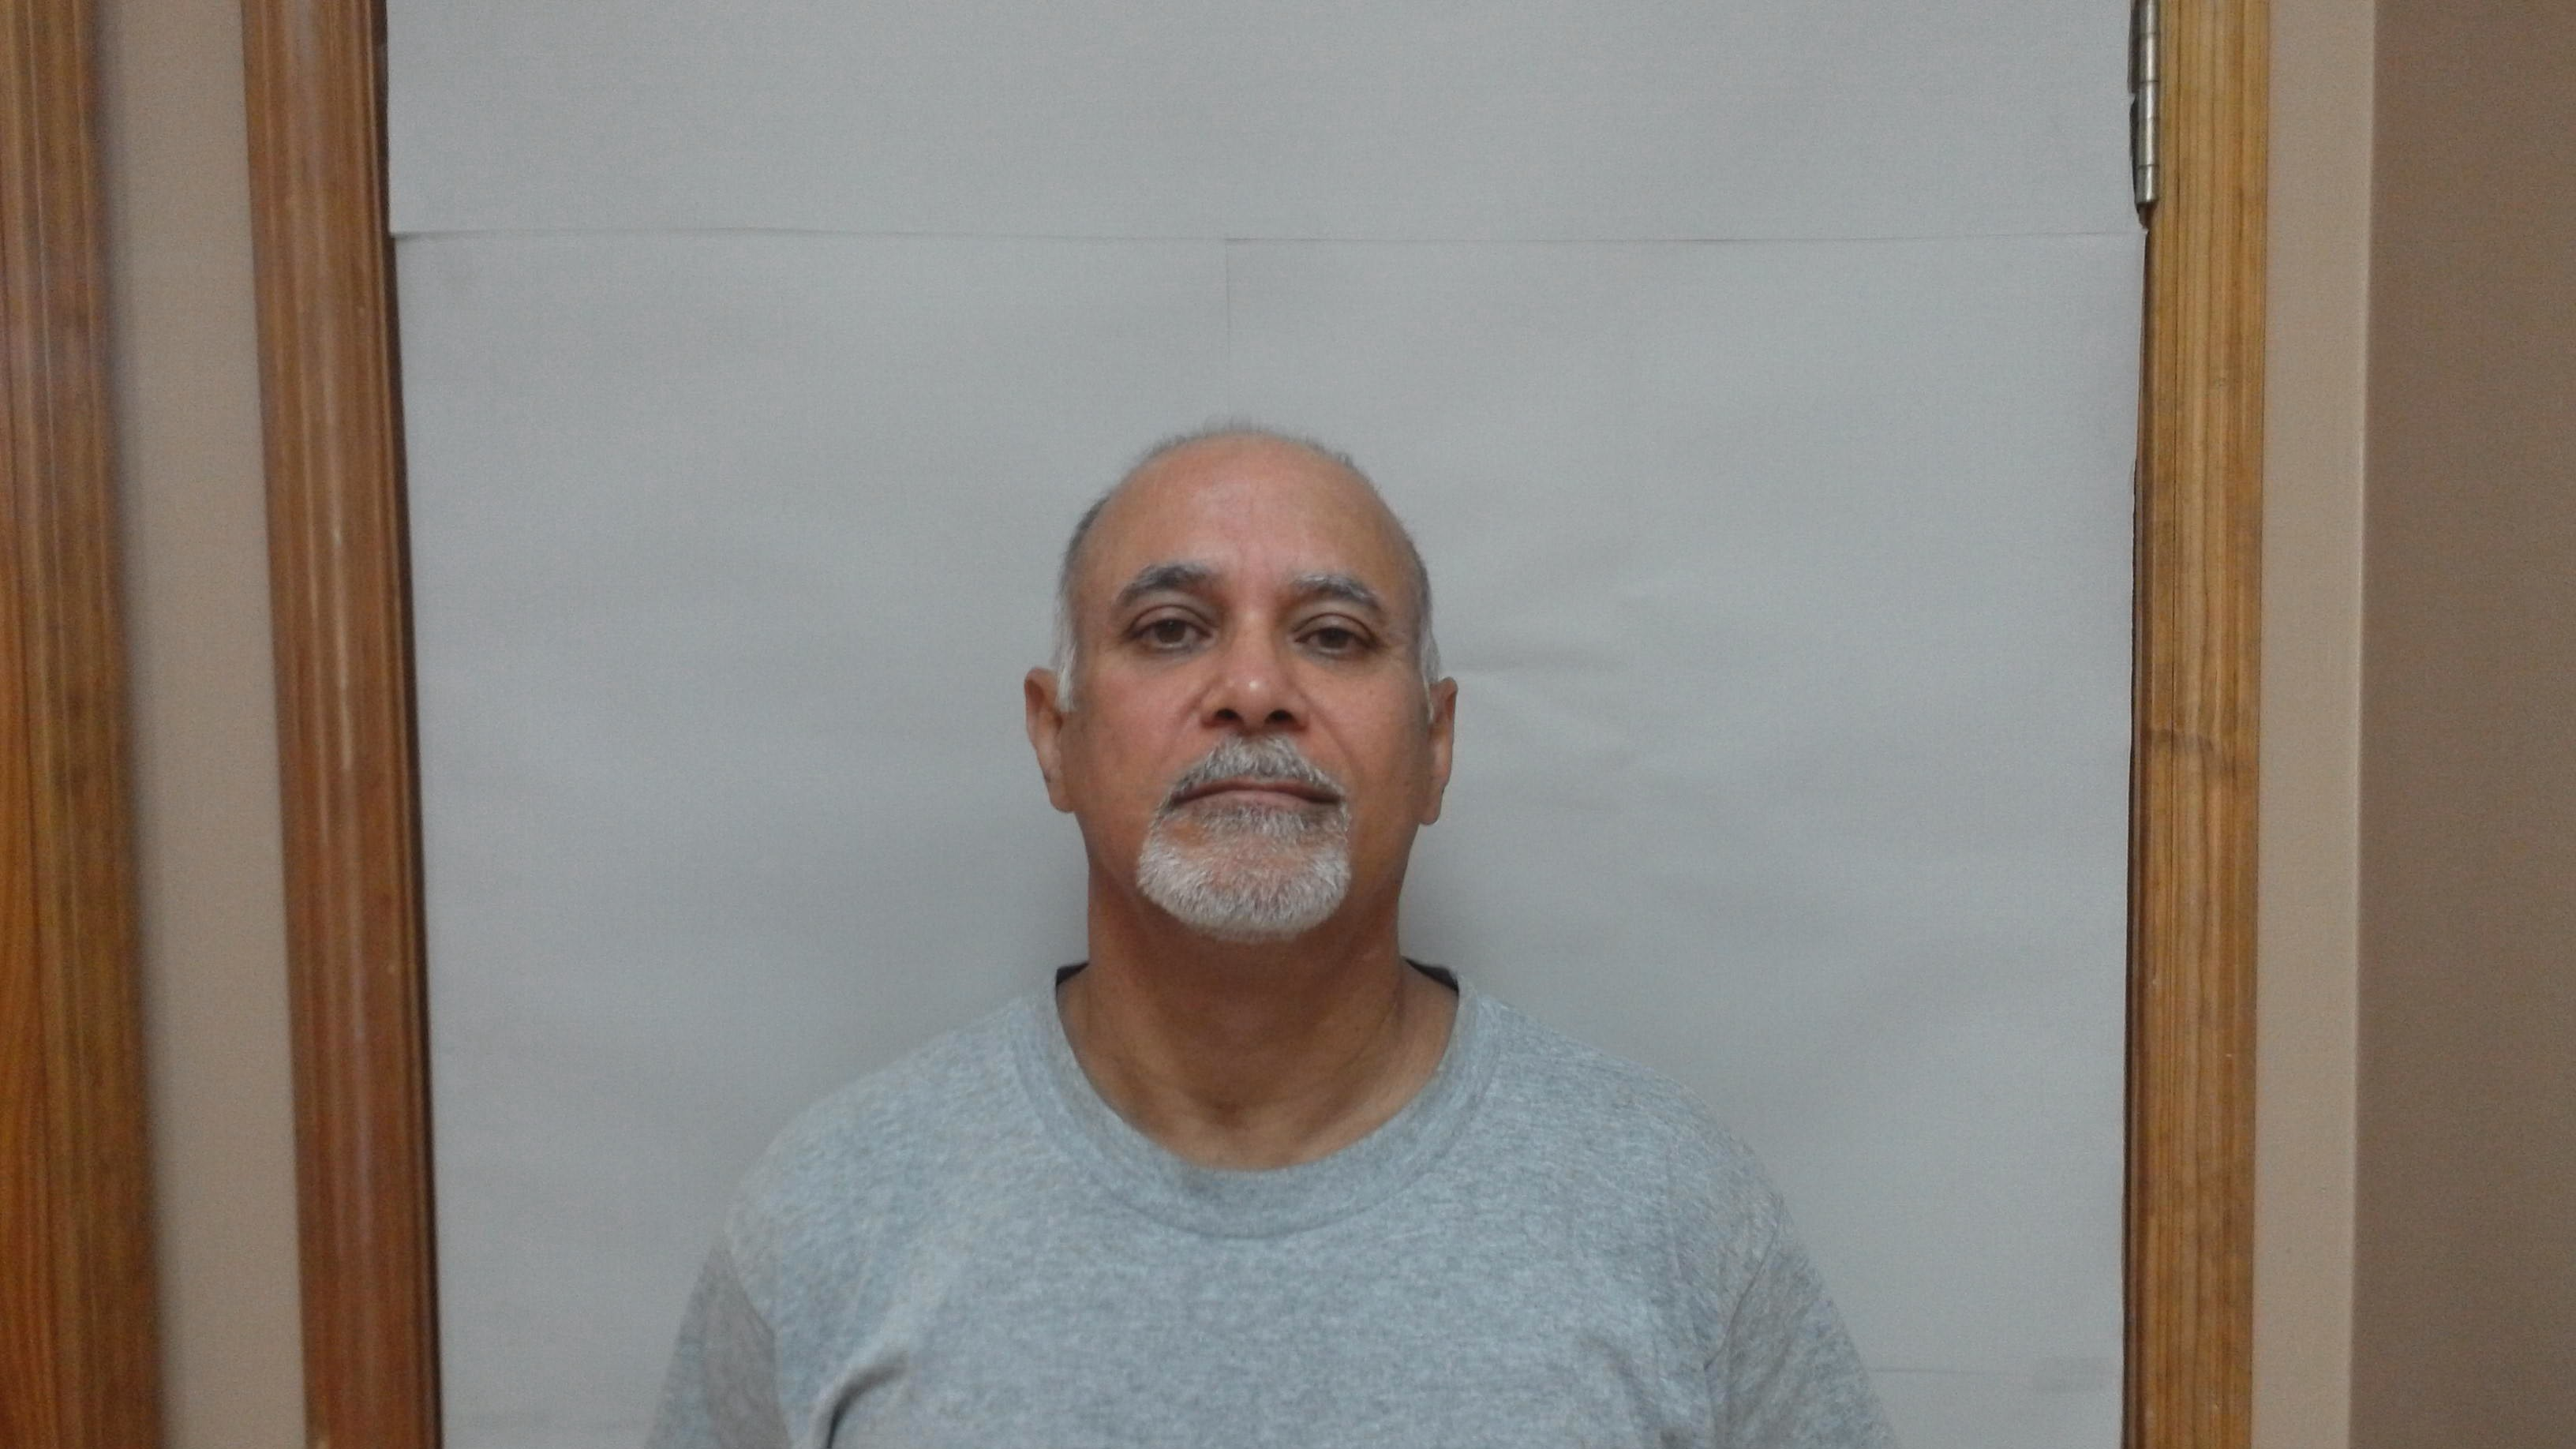 Offender Information - Kentucky Department of Corrections